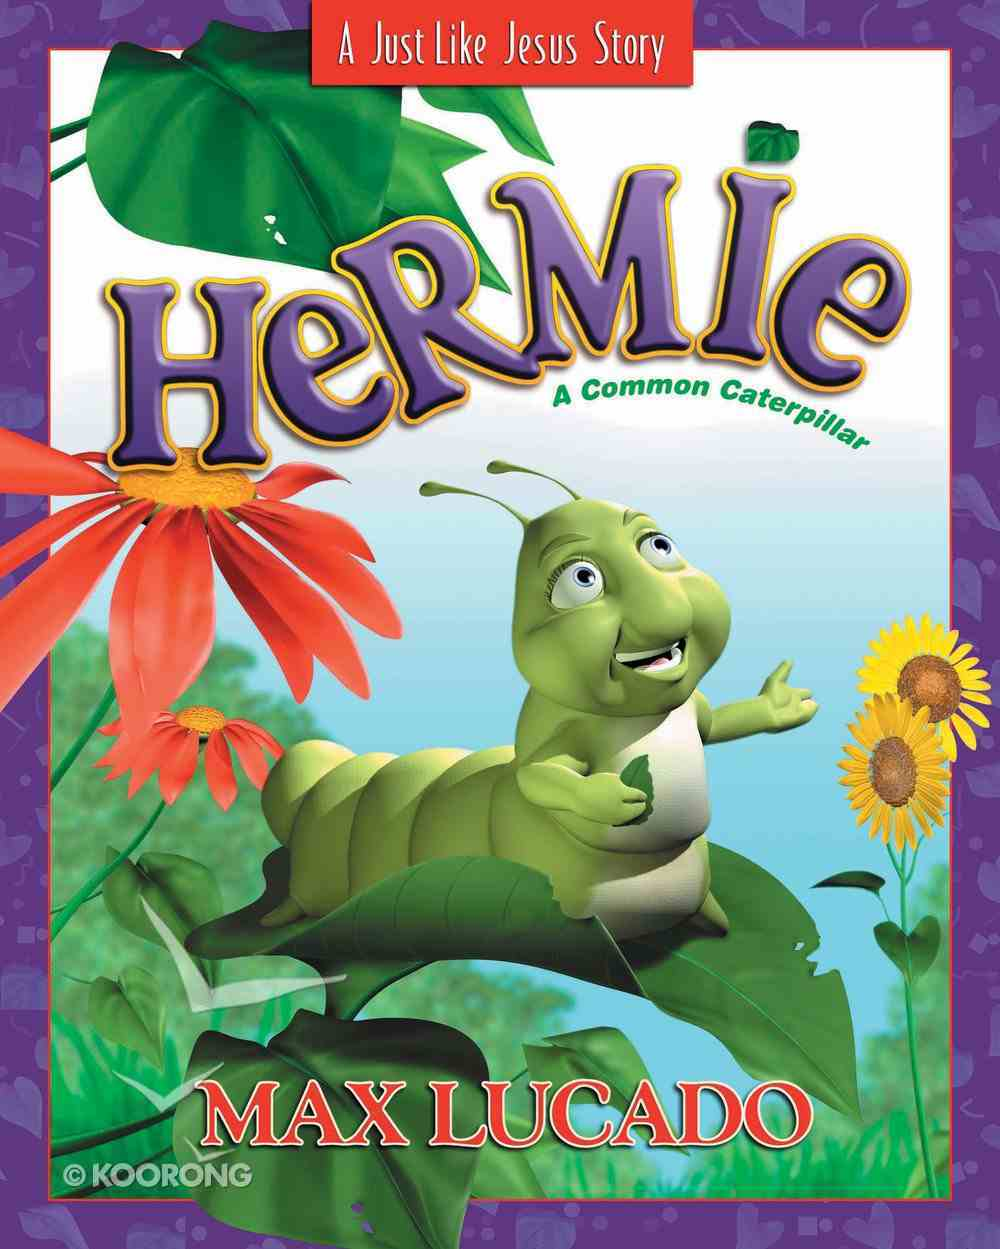 Hermie, a Common Caterpillar (Hermie And Friends Series) eBook